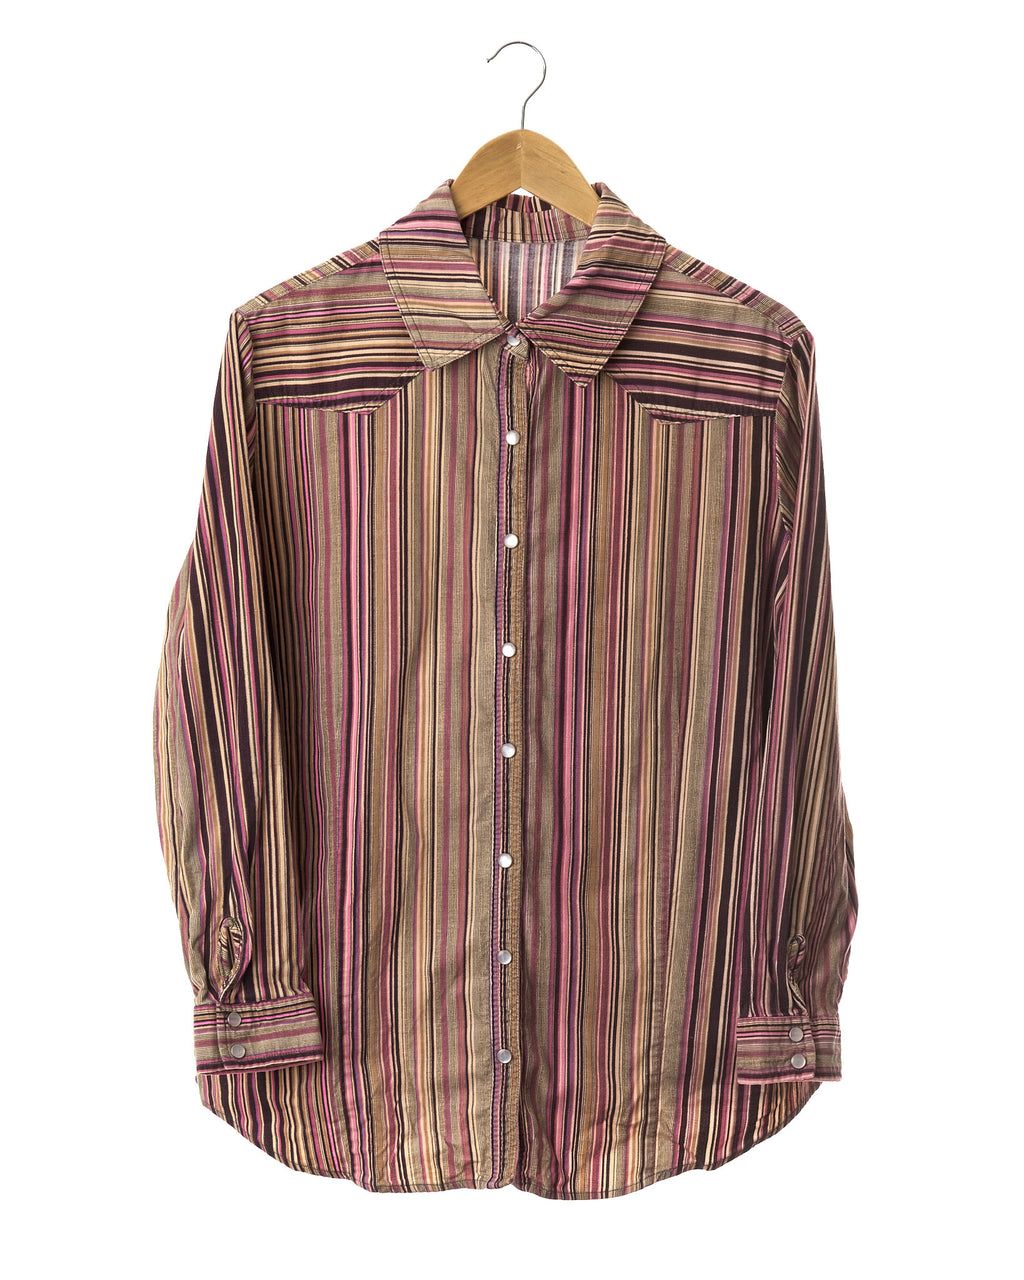 Retro Striped Corduroy Shirt